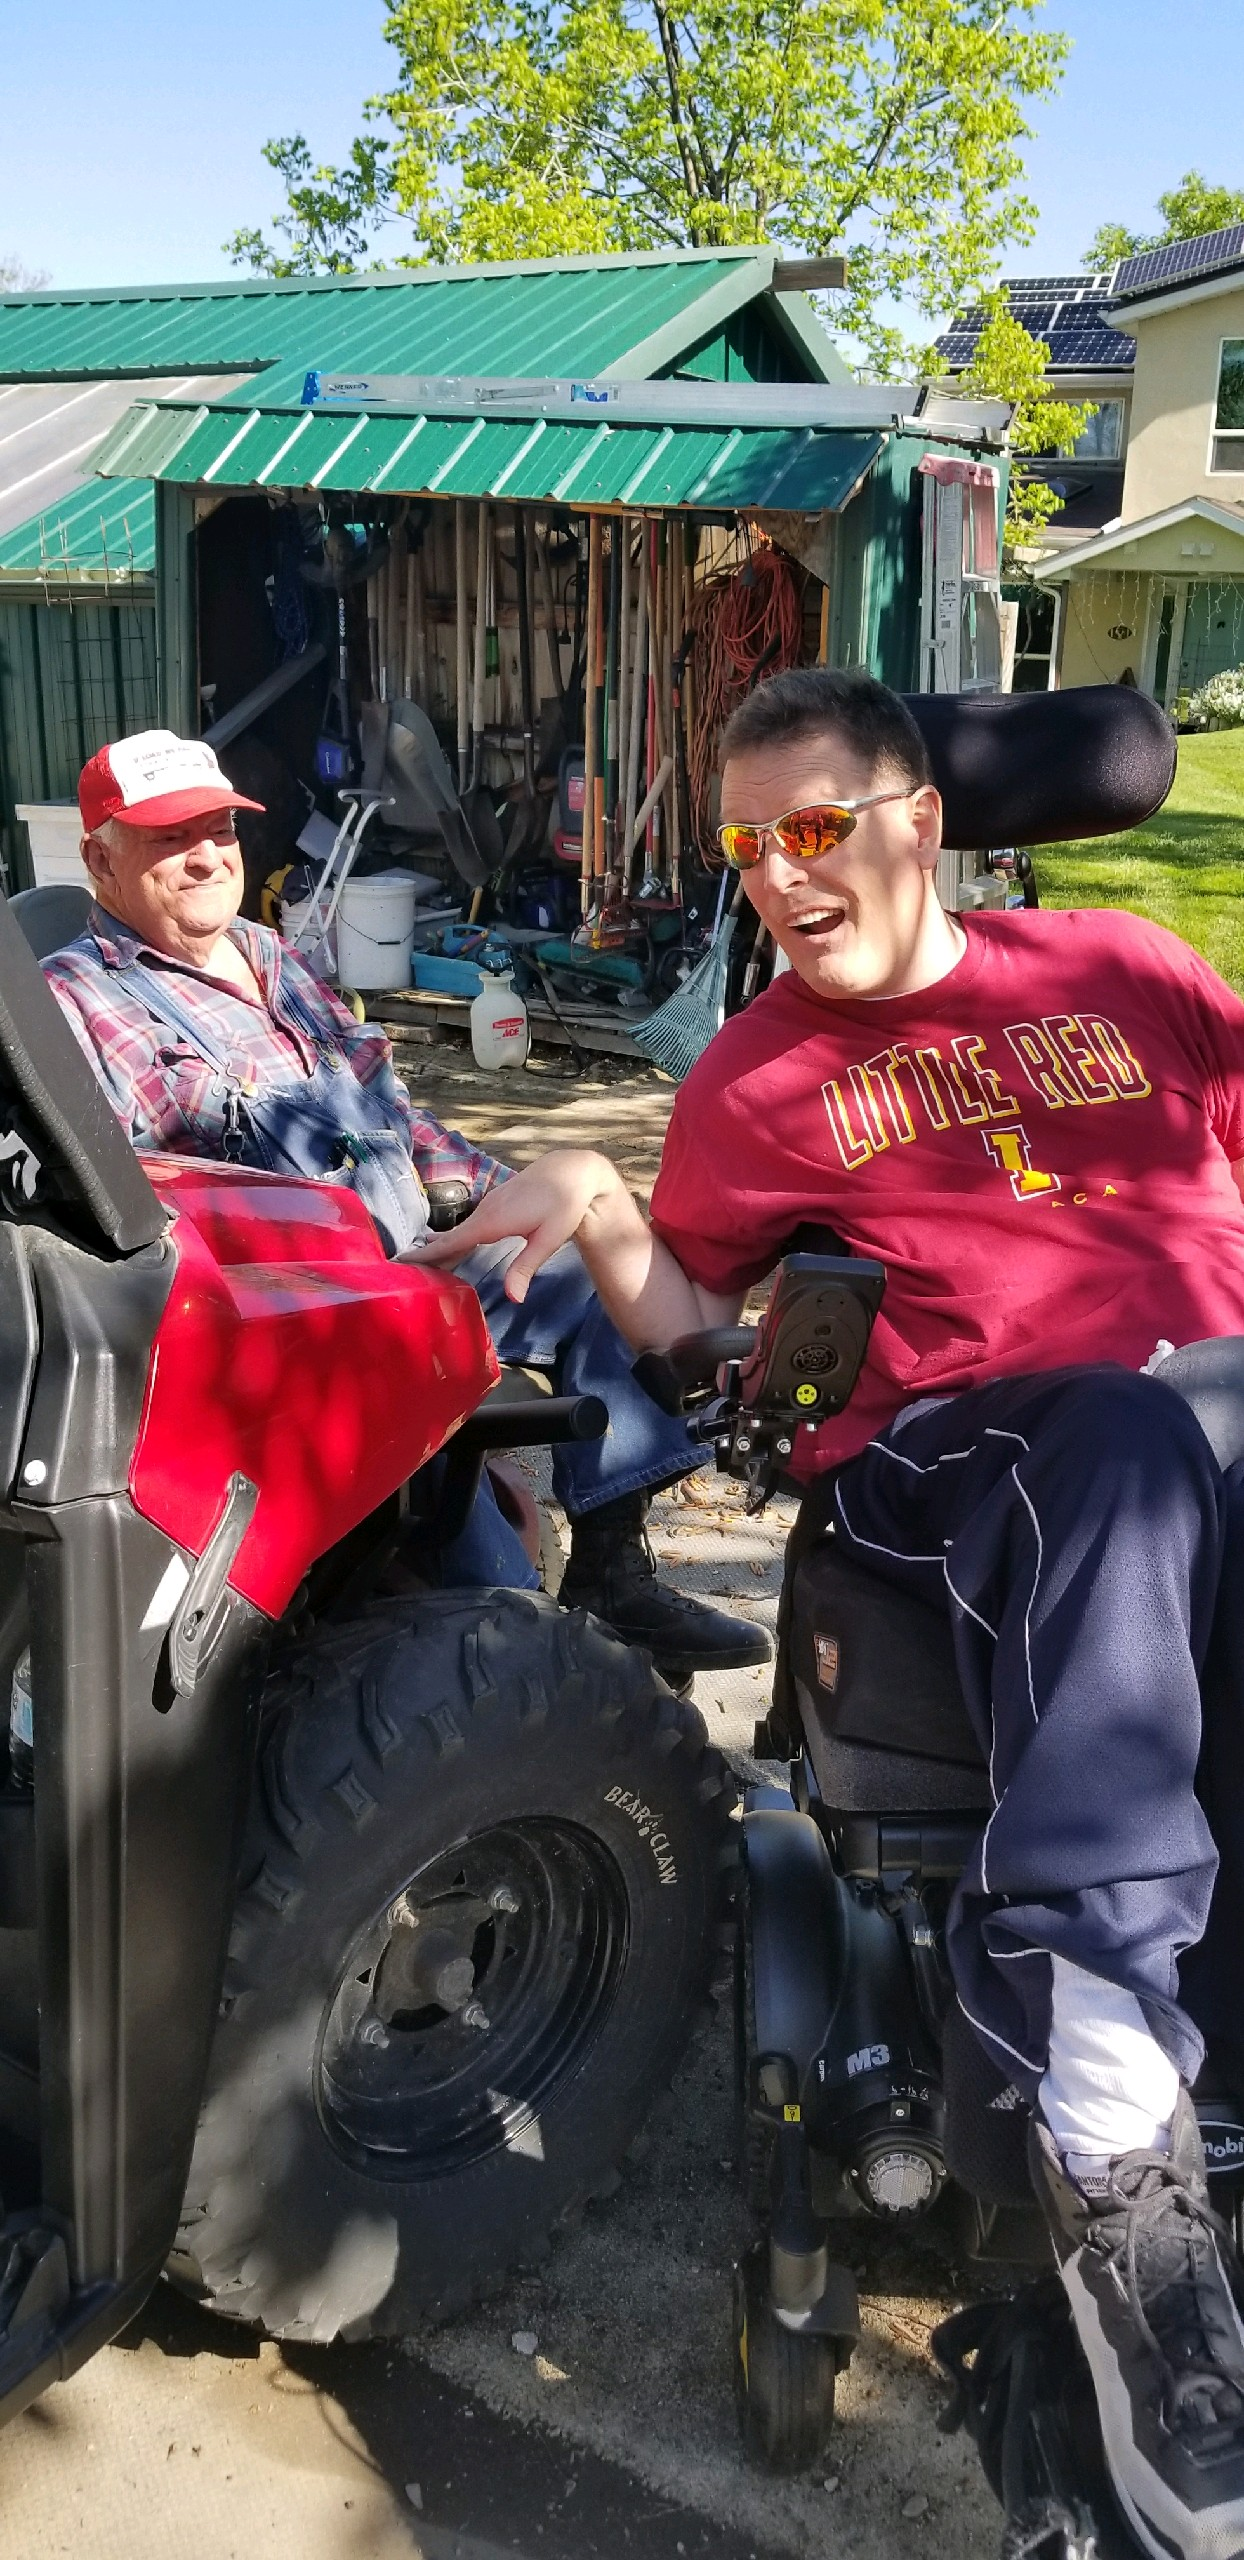 Orin Voorheis and his father like to go for rides in a Polaris. More than 20 years after being shot in the head on his mission, Voorheis is living a happy life surrounded by family and friends.